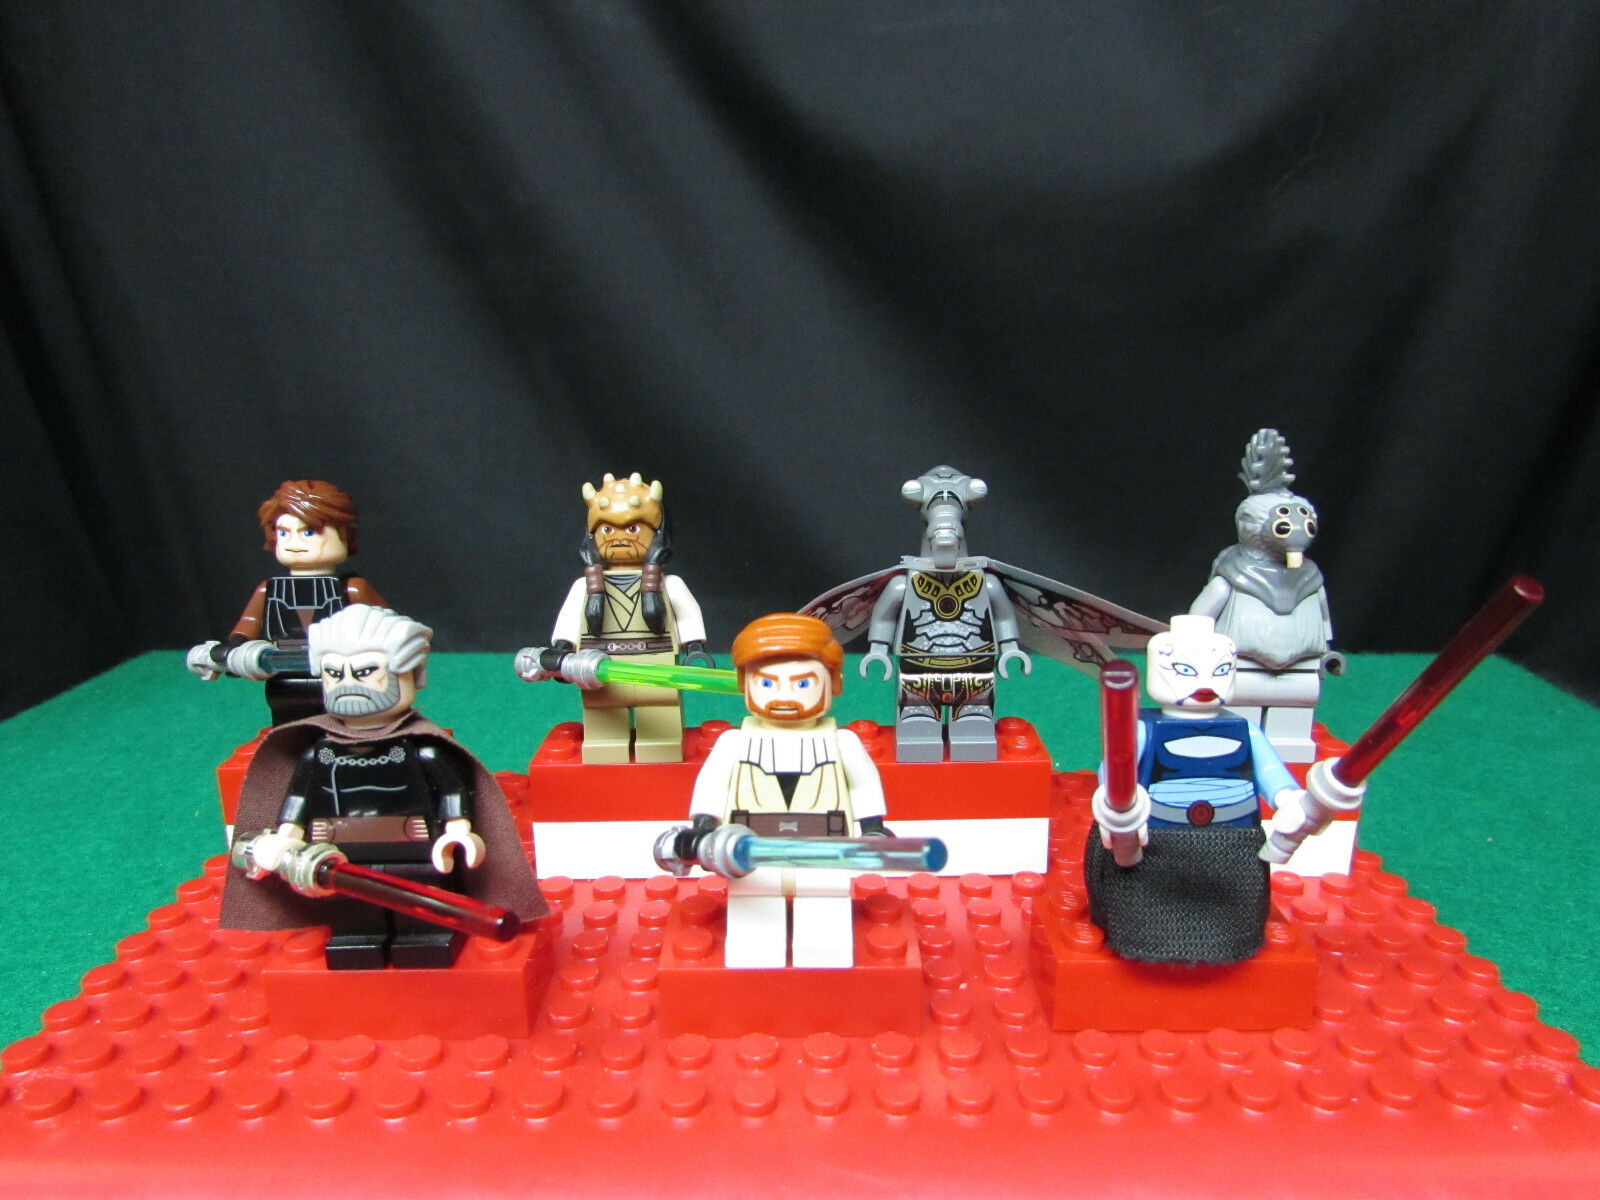 Lego Star Wars  The Clone Wars  Lot of 7 Minifigures (Dooku,Ventress,Koth)